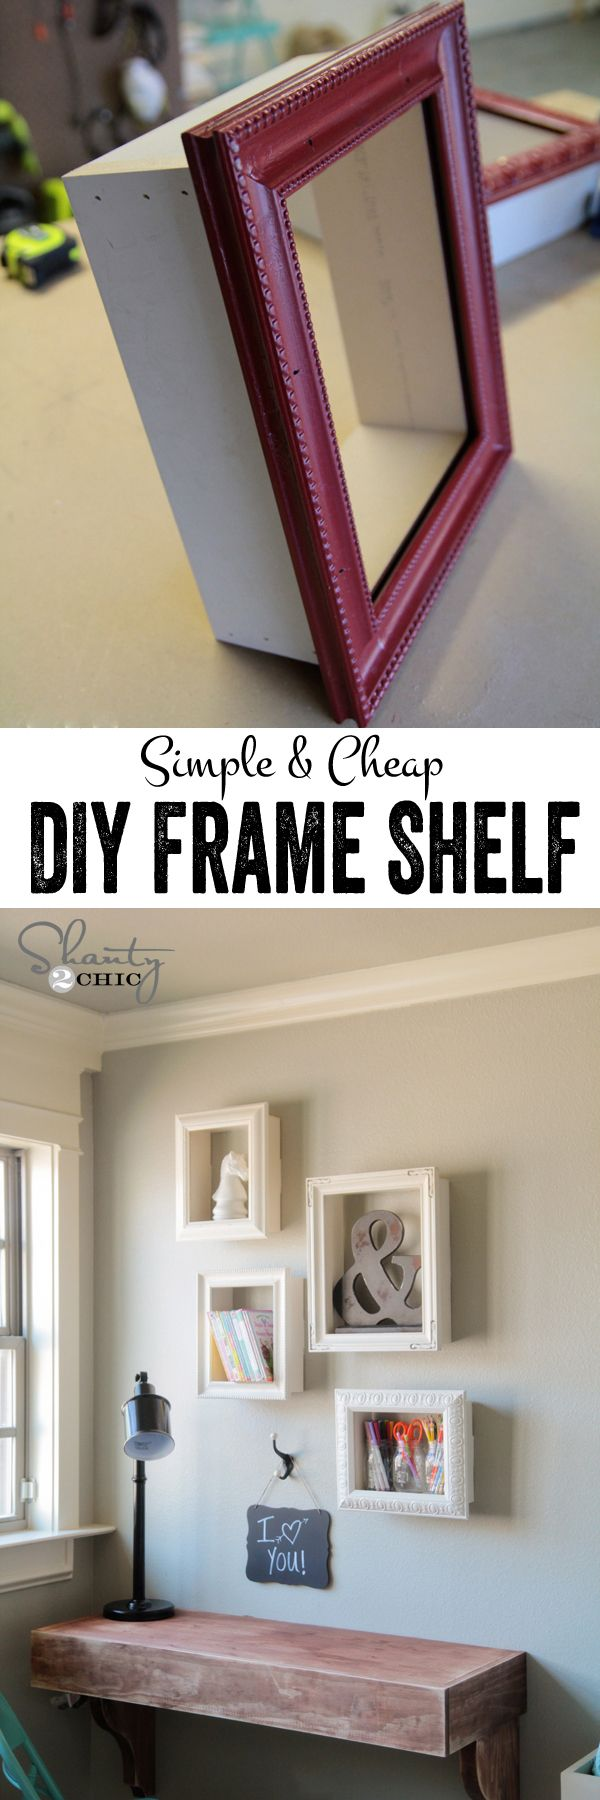 10-unbelievably-cheap-but-awesome-diy-home-decor-projects